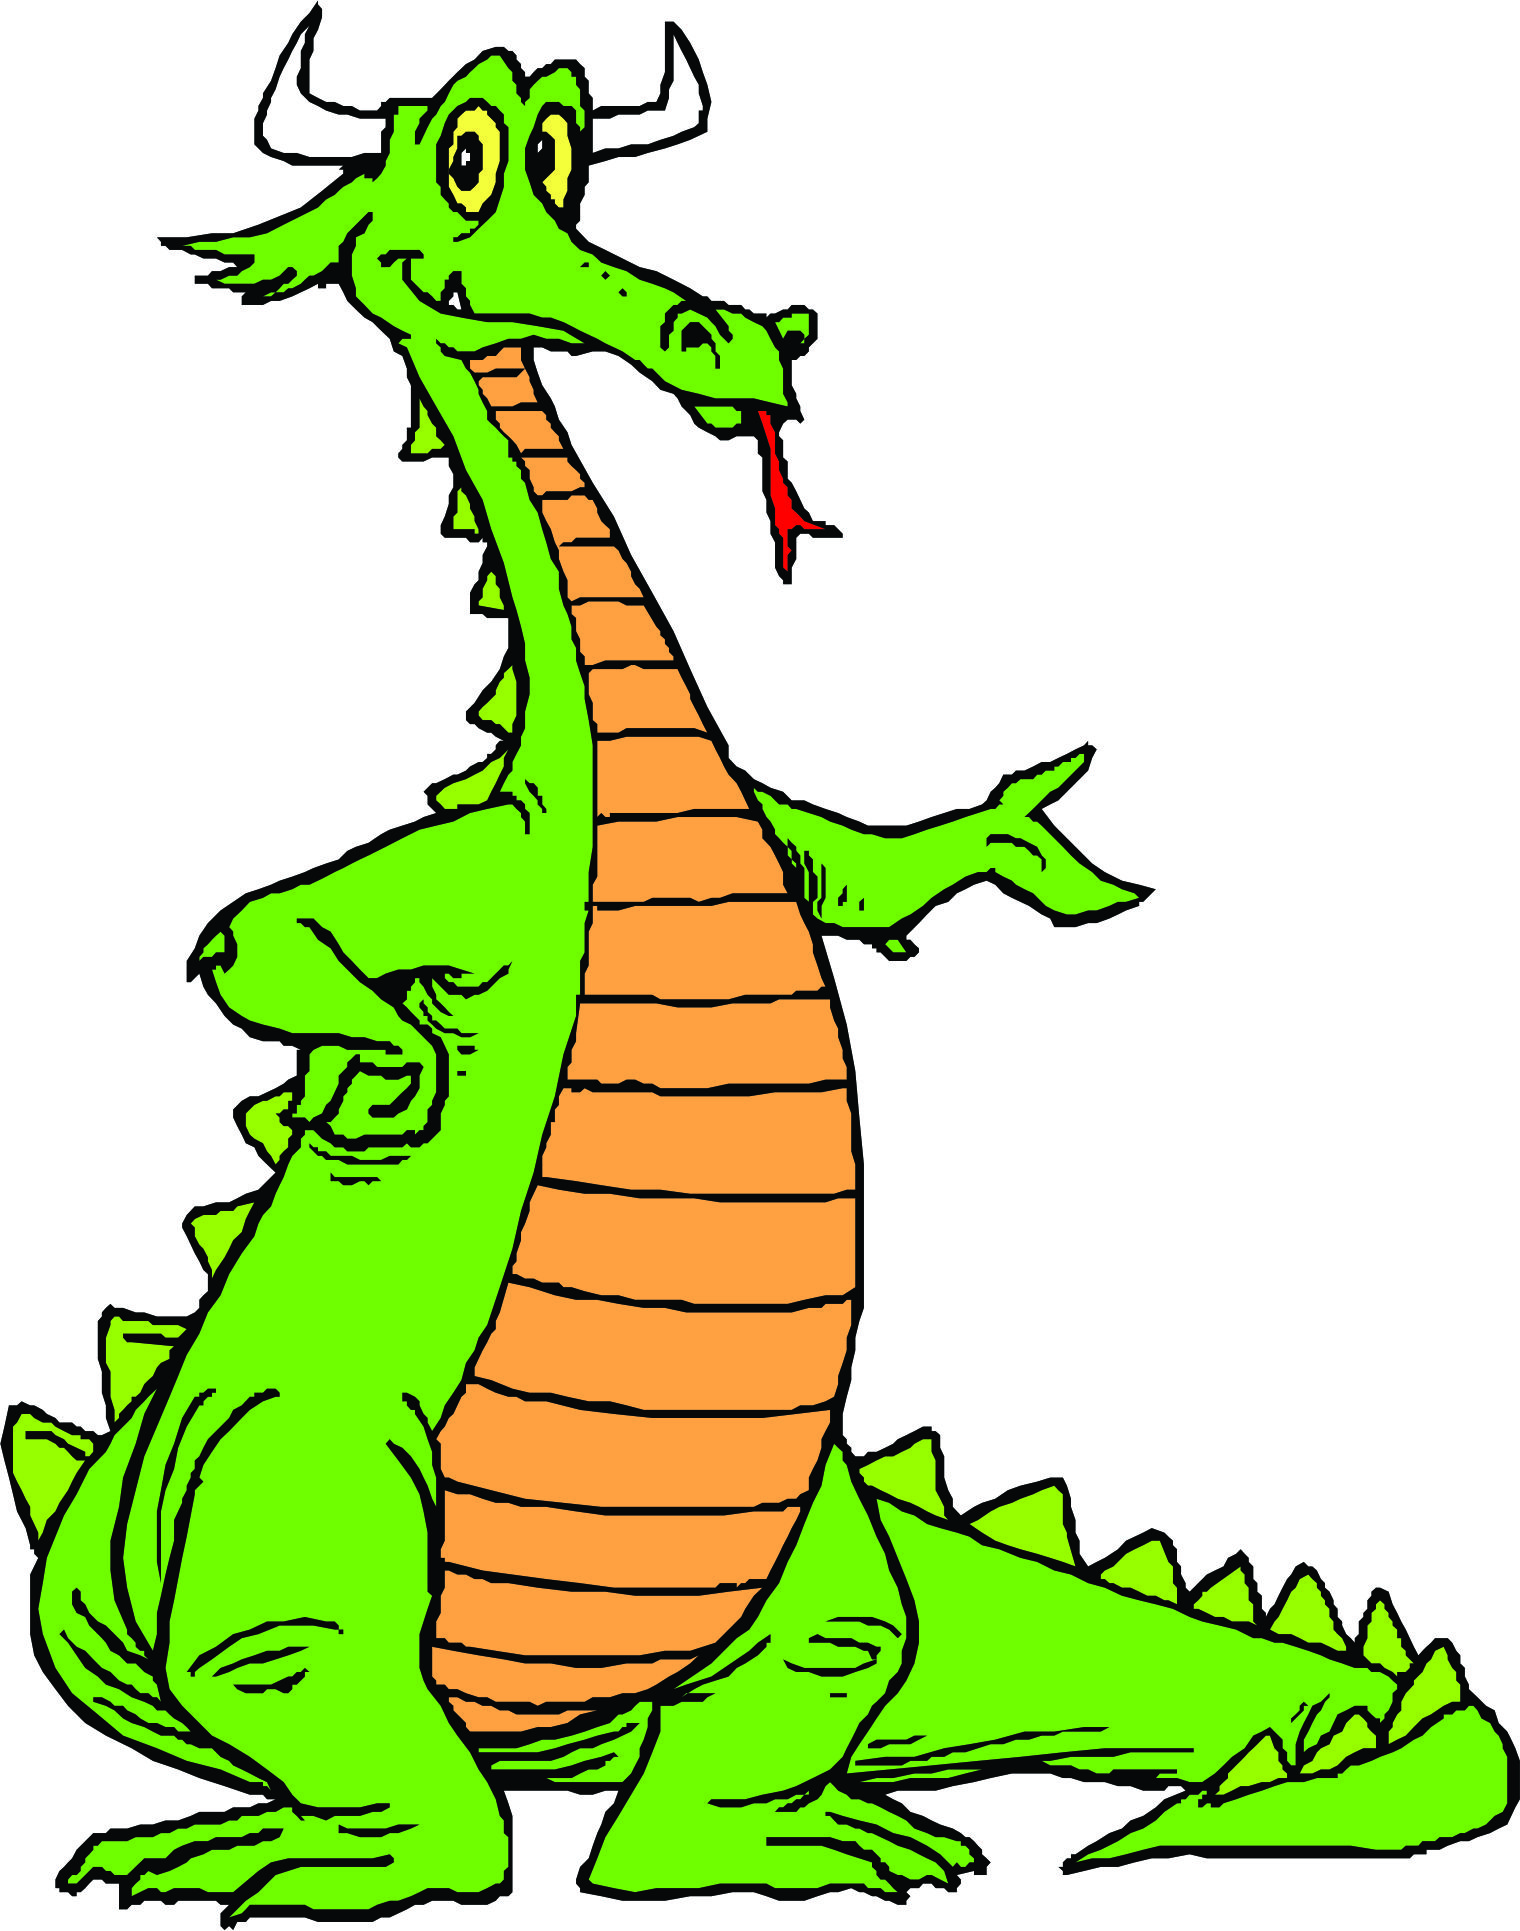 Free Cartoon Pictures Of Dragons, Download Free Clip Art, Free Clip.